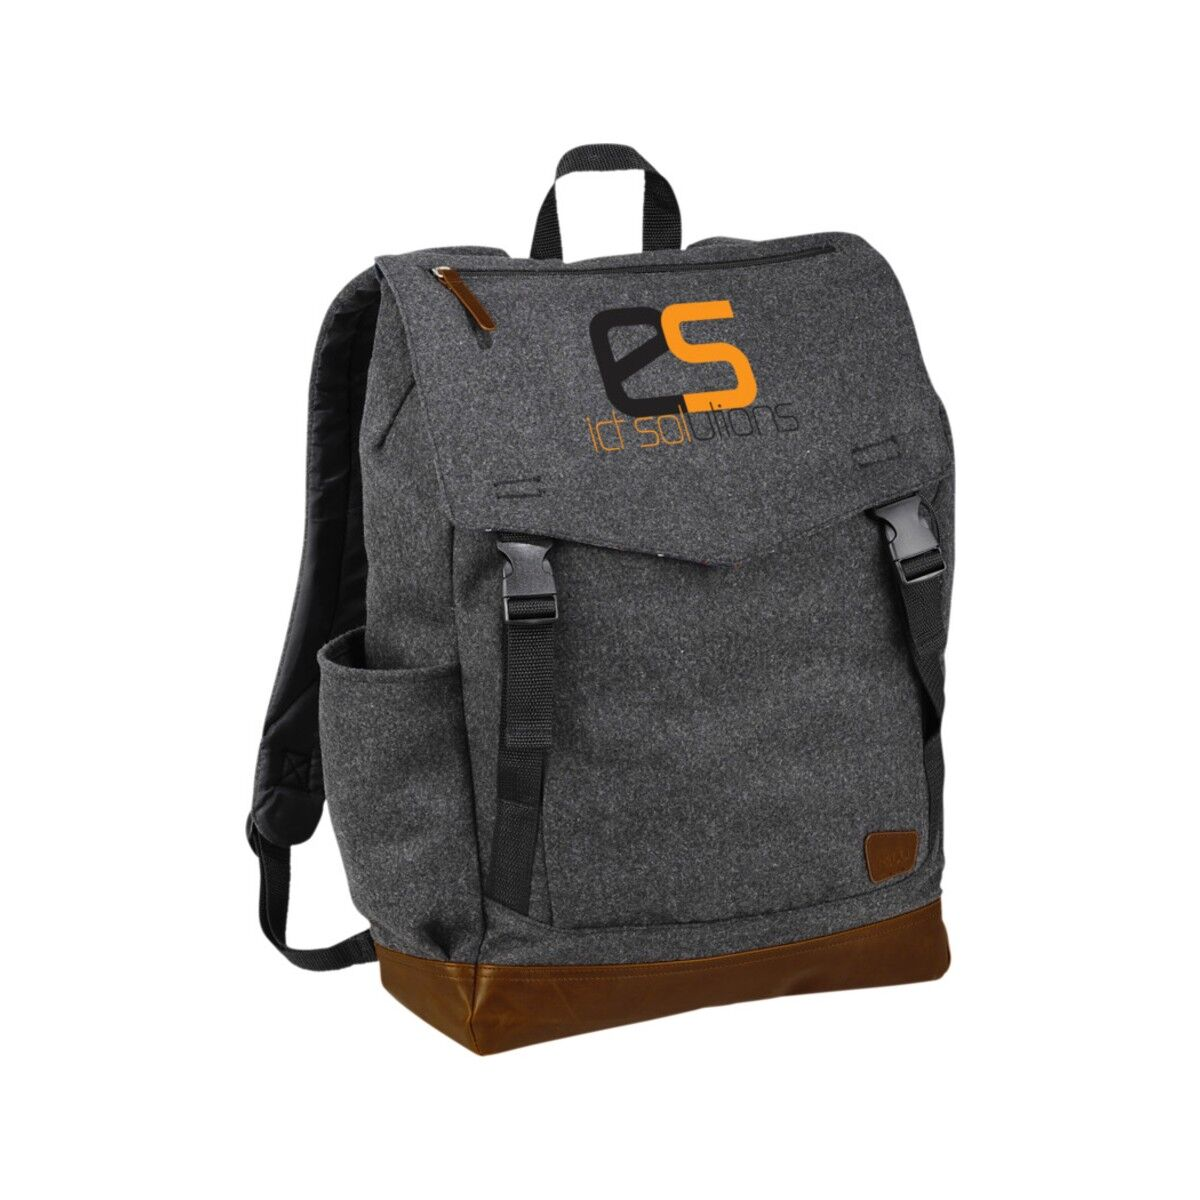 Retro Laptop Backpack